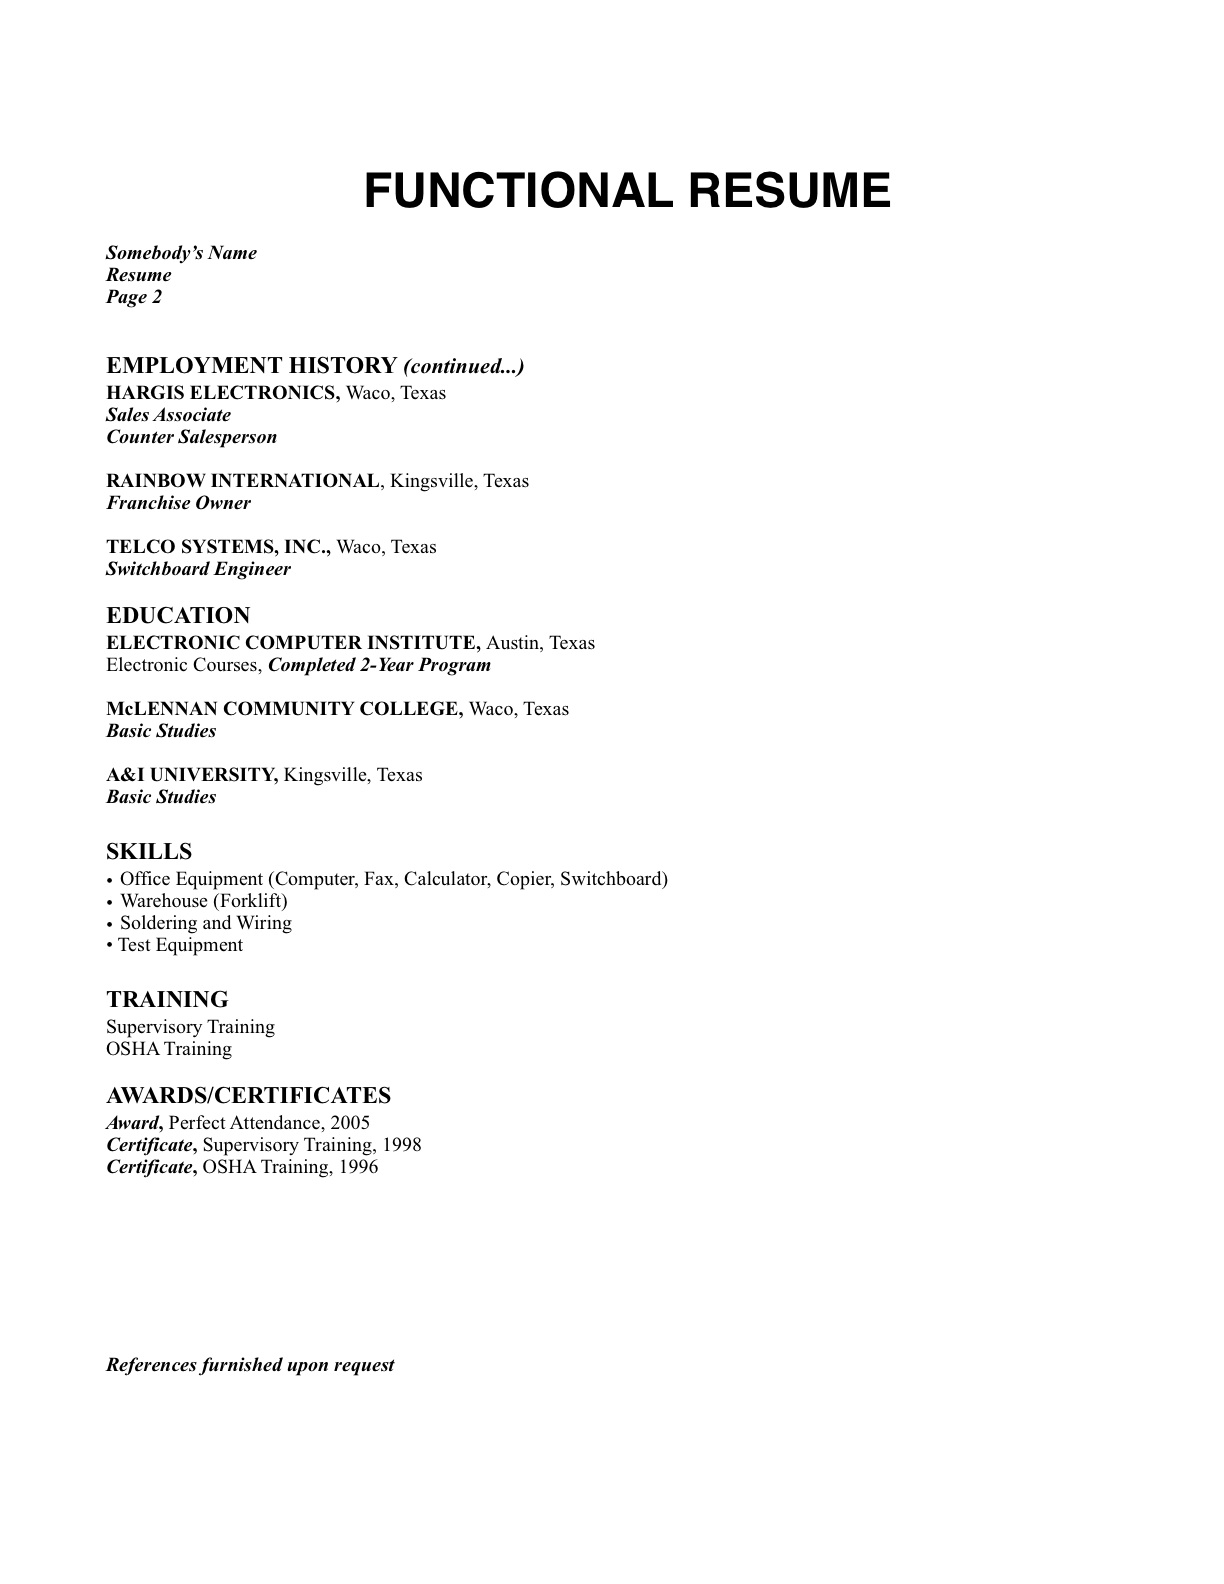 what is the format of resumes